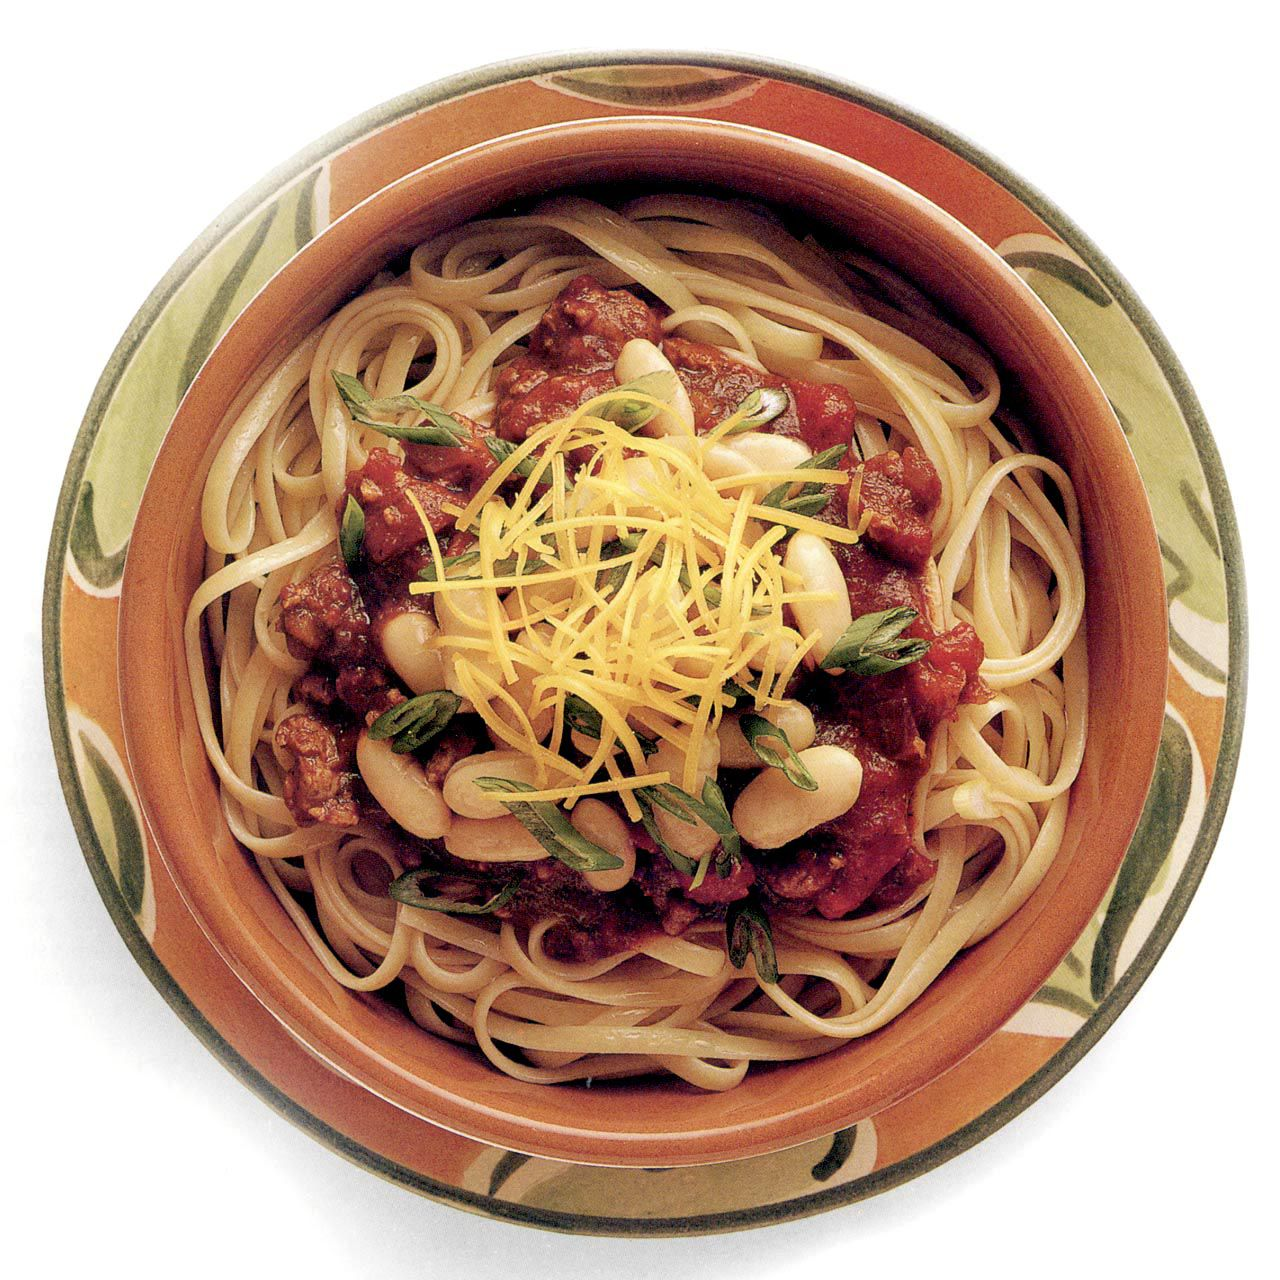 Linguine with Spicy Chili Sauce and Beans